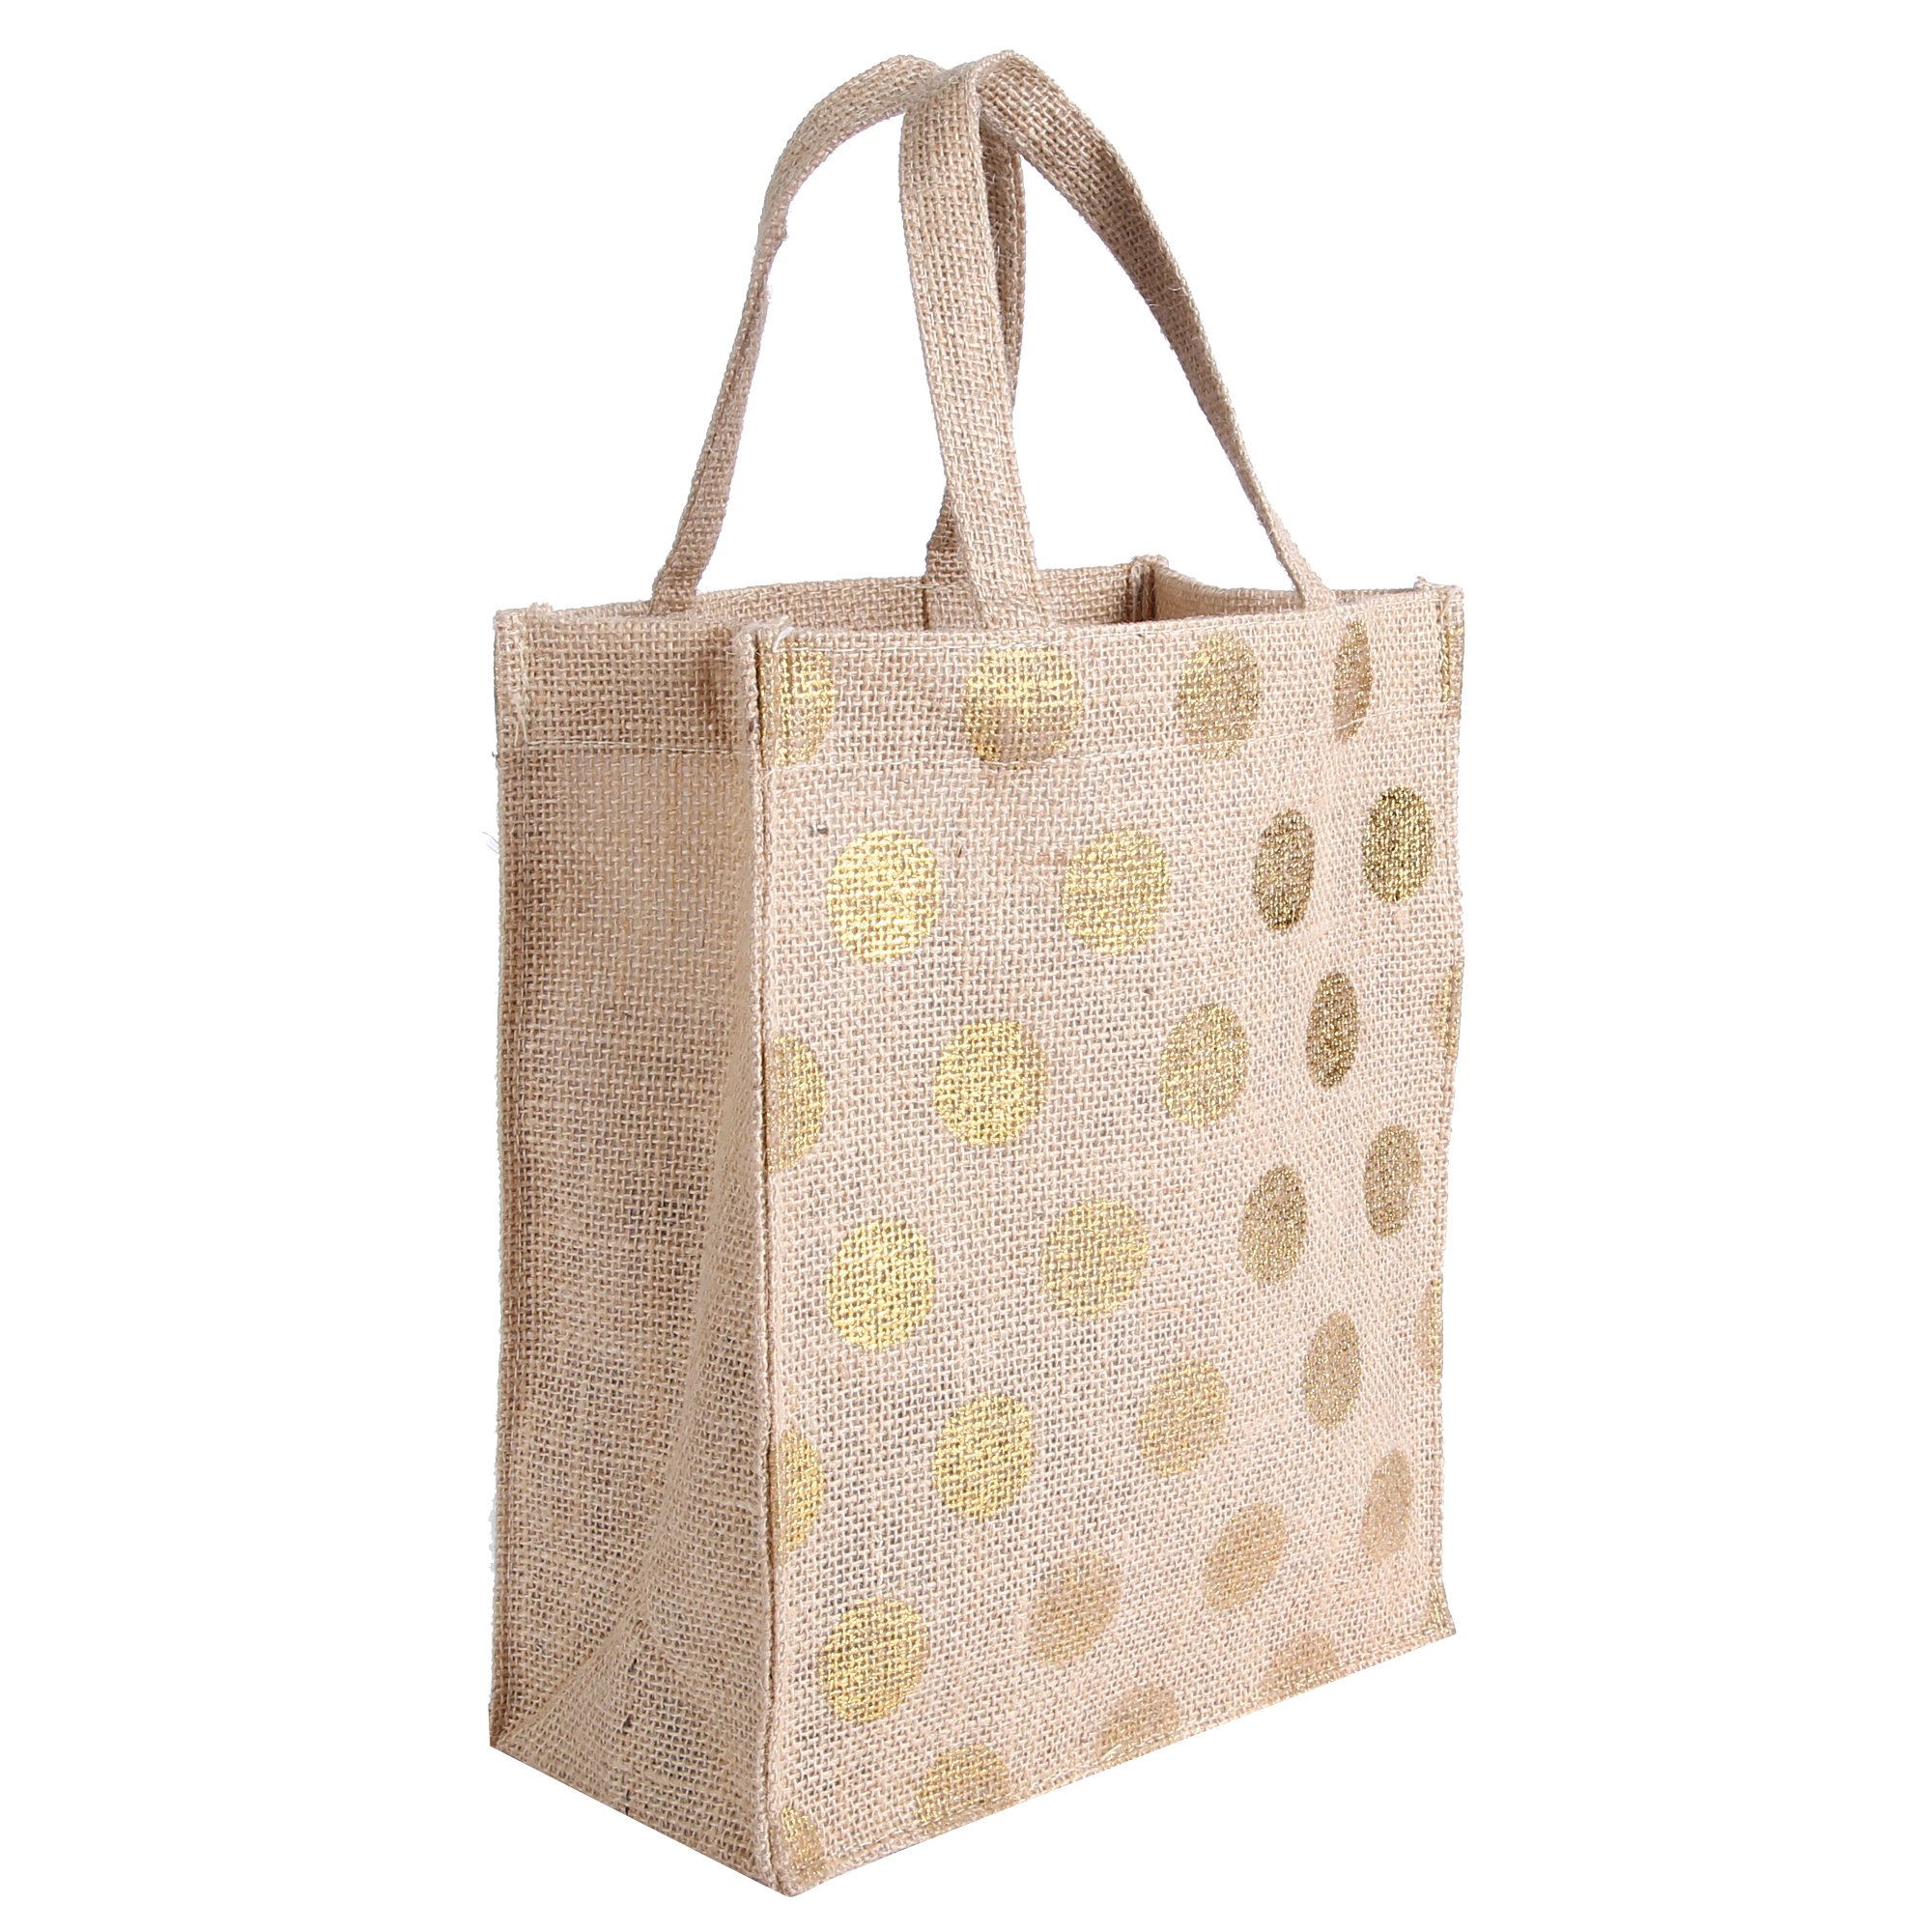 Earthbags - Reusable Natural Jute Gift Bags With Gold Foil Polka Prints (Pack of 4)